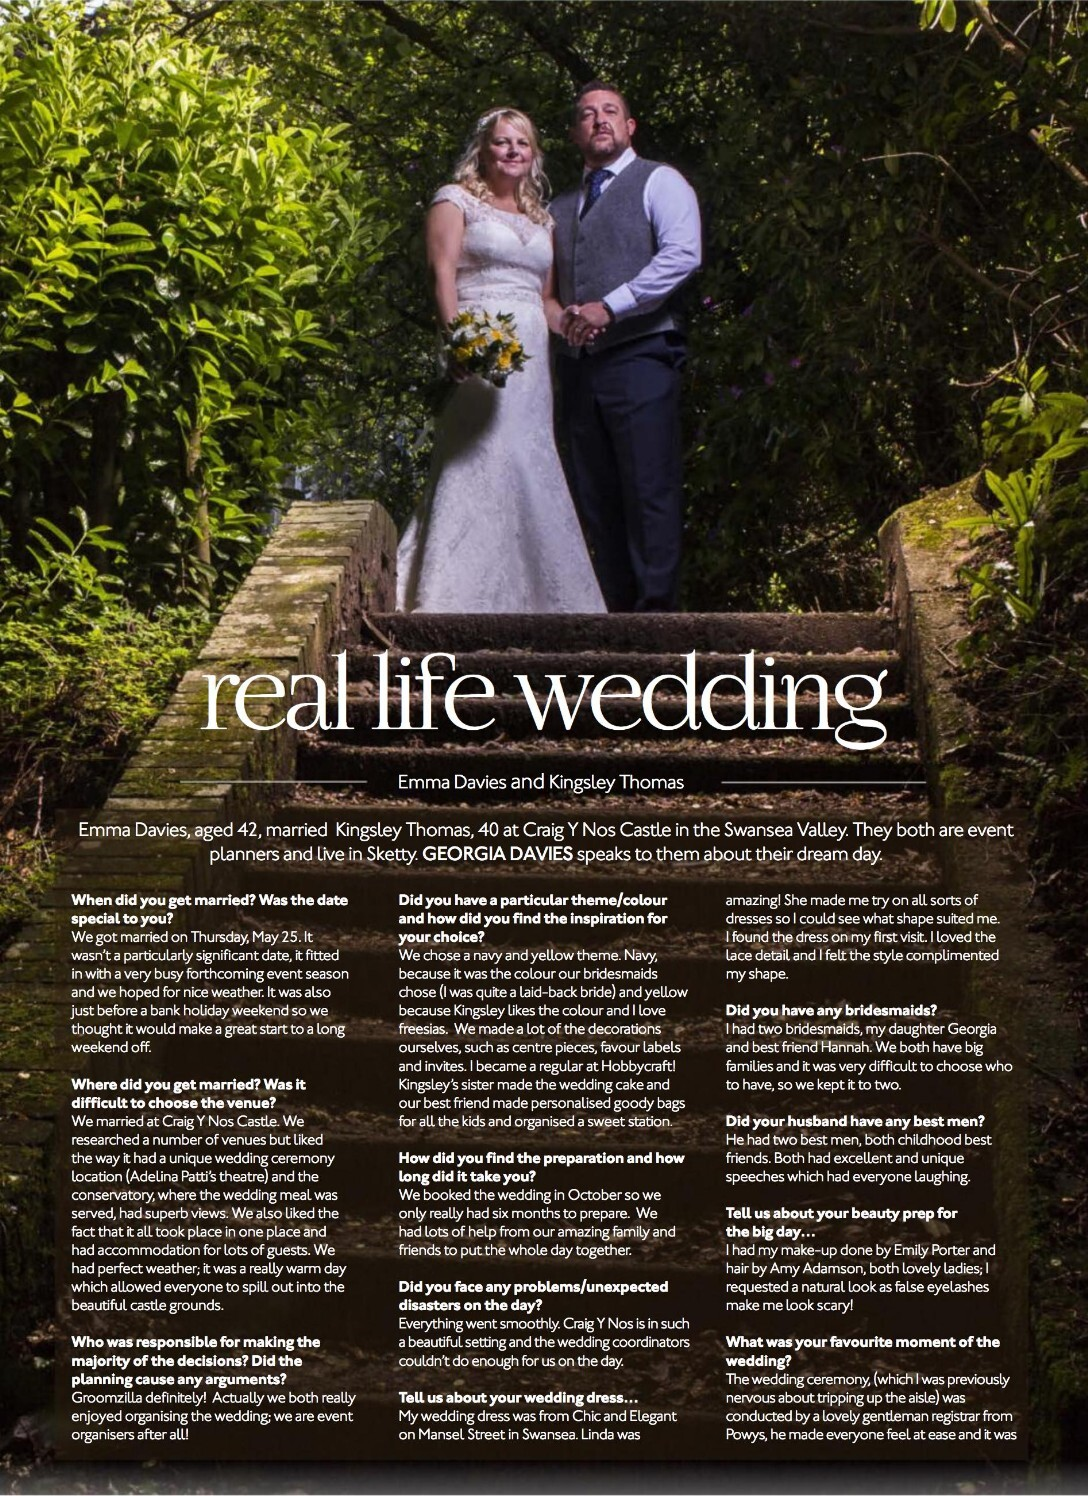 Swansea Life Magazine reivew of a Wedding at Craig y Nos Castle